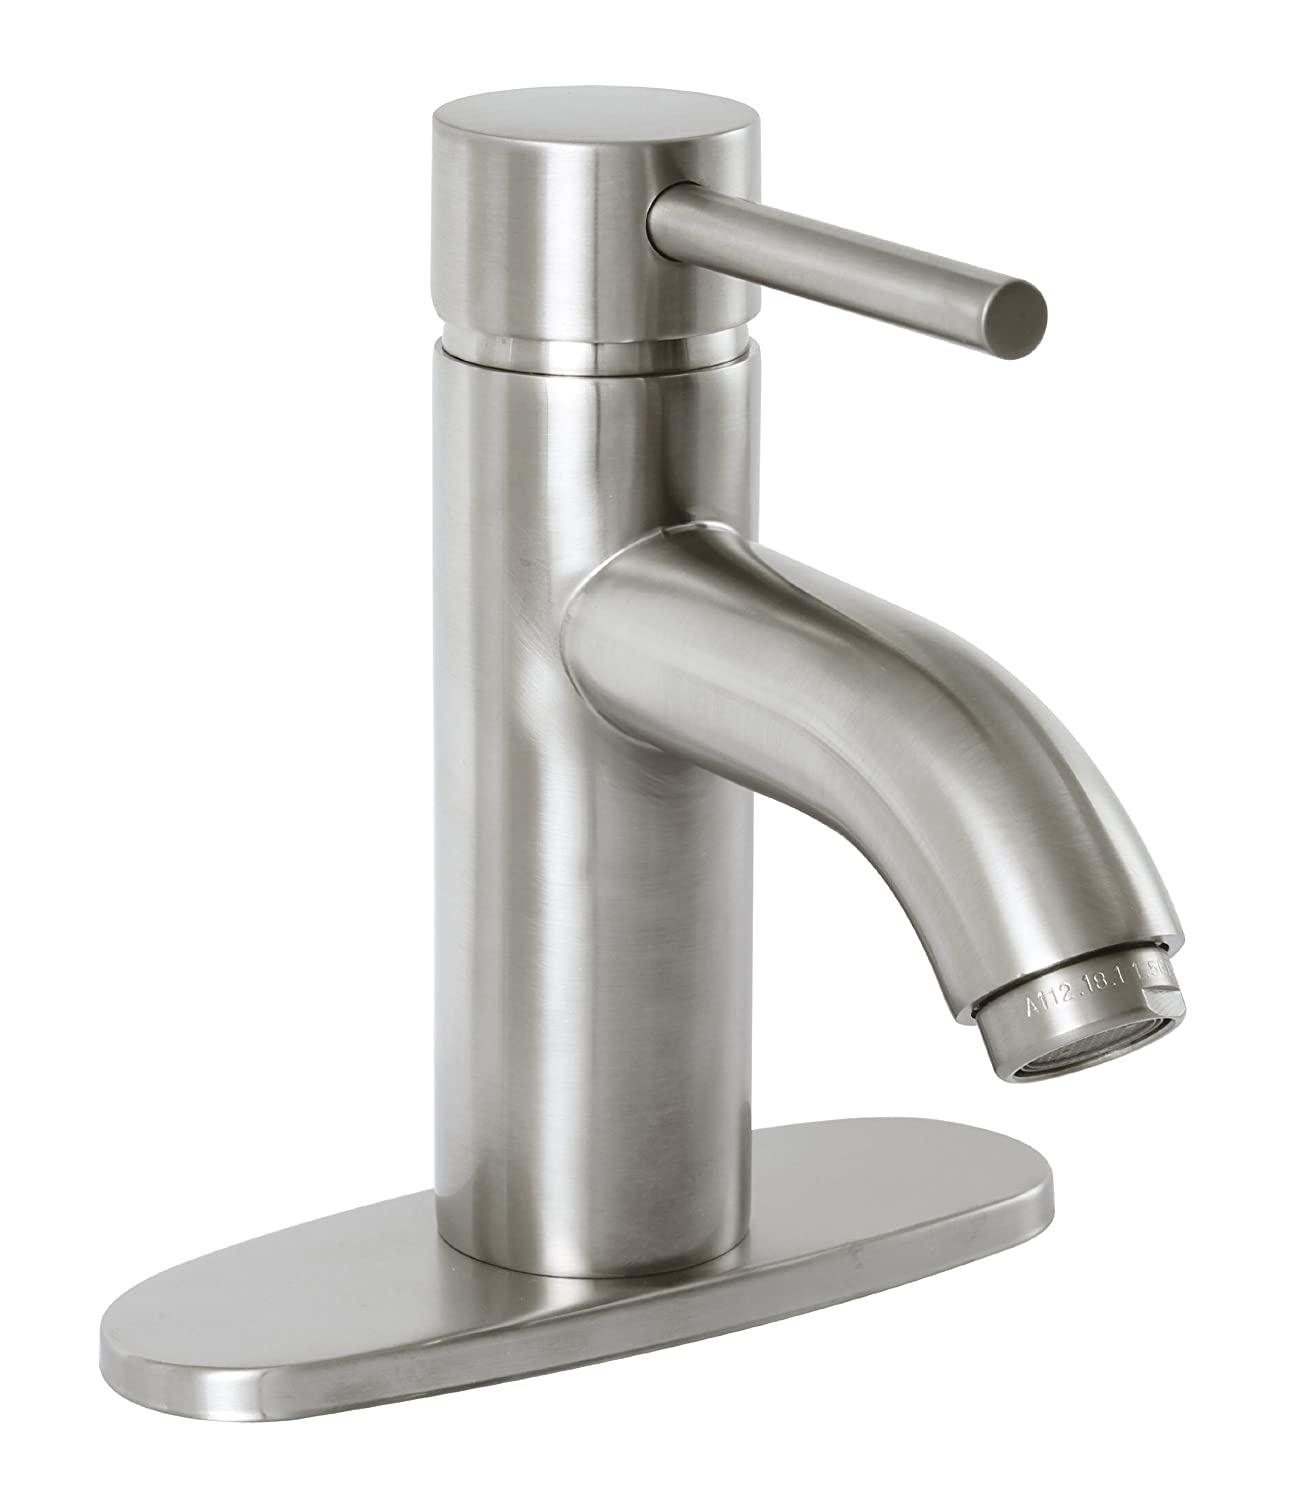 Premier Essen Single Handle Lavatory Faucet Chrome Touch